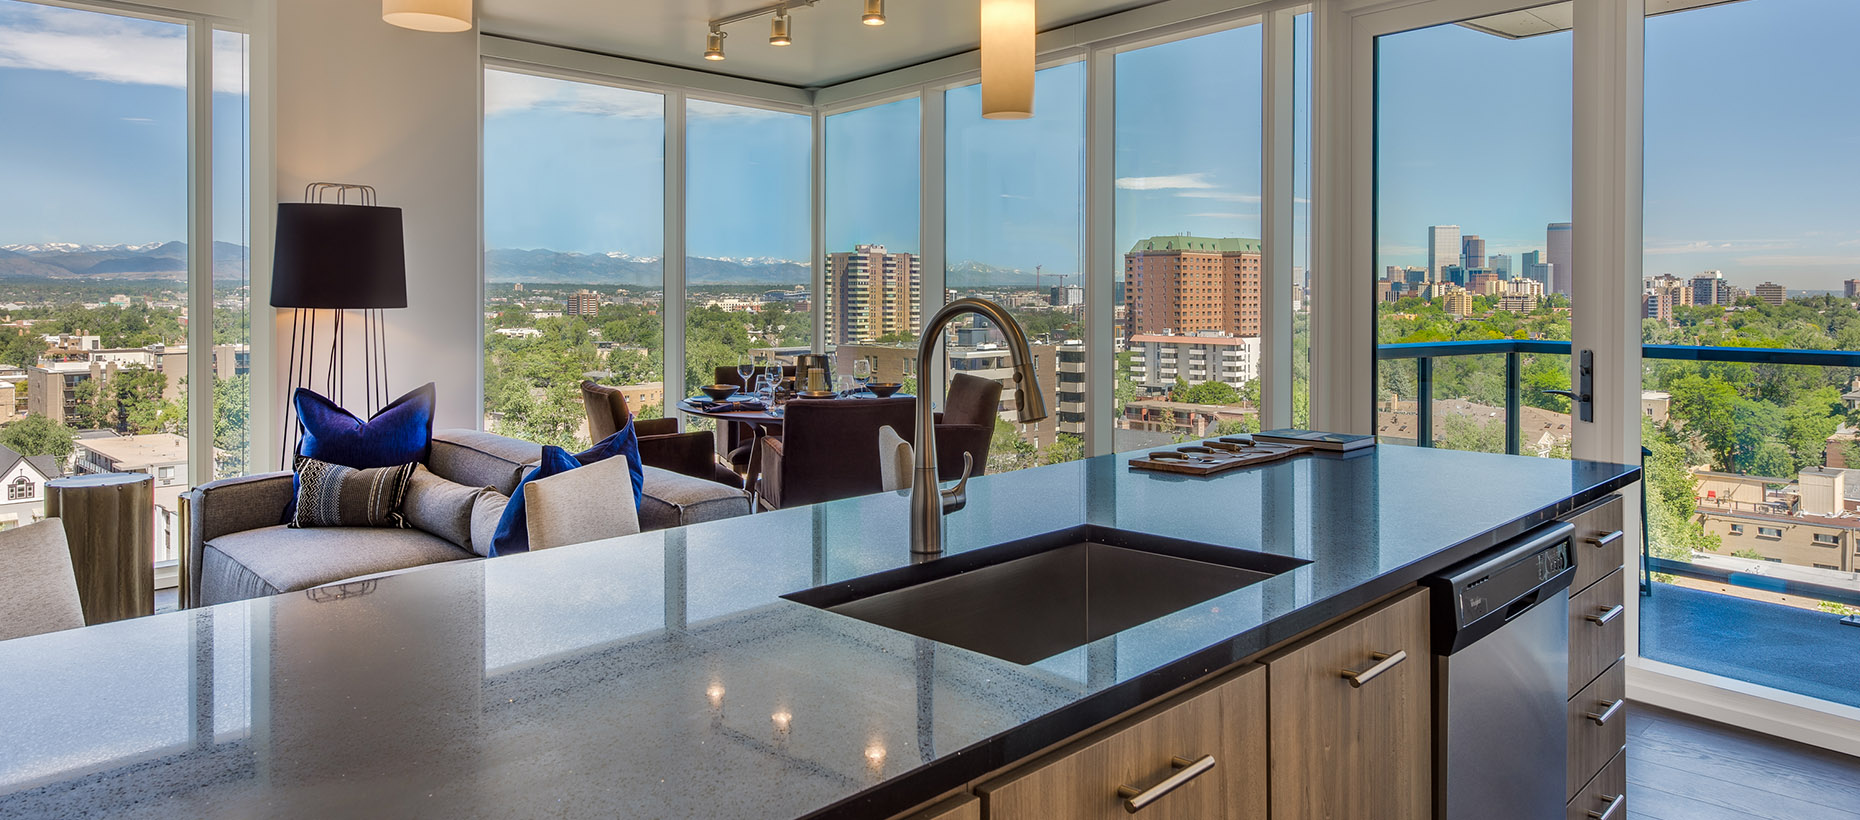 Towers Ii And Iii Studio 1 2 Bedroom Apartments In Denver Co